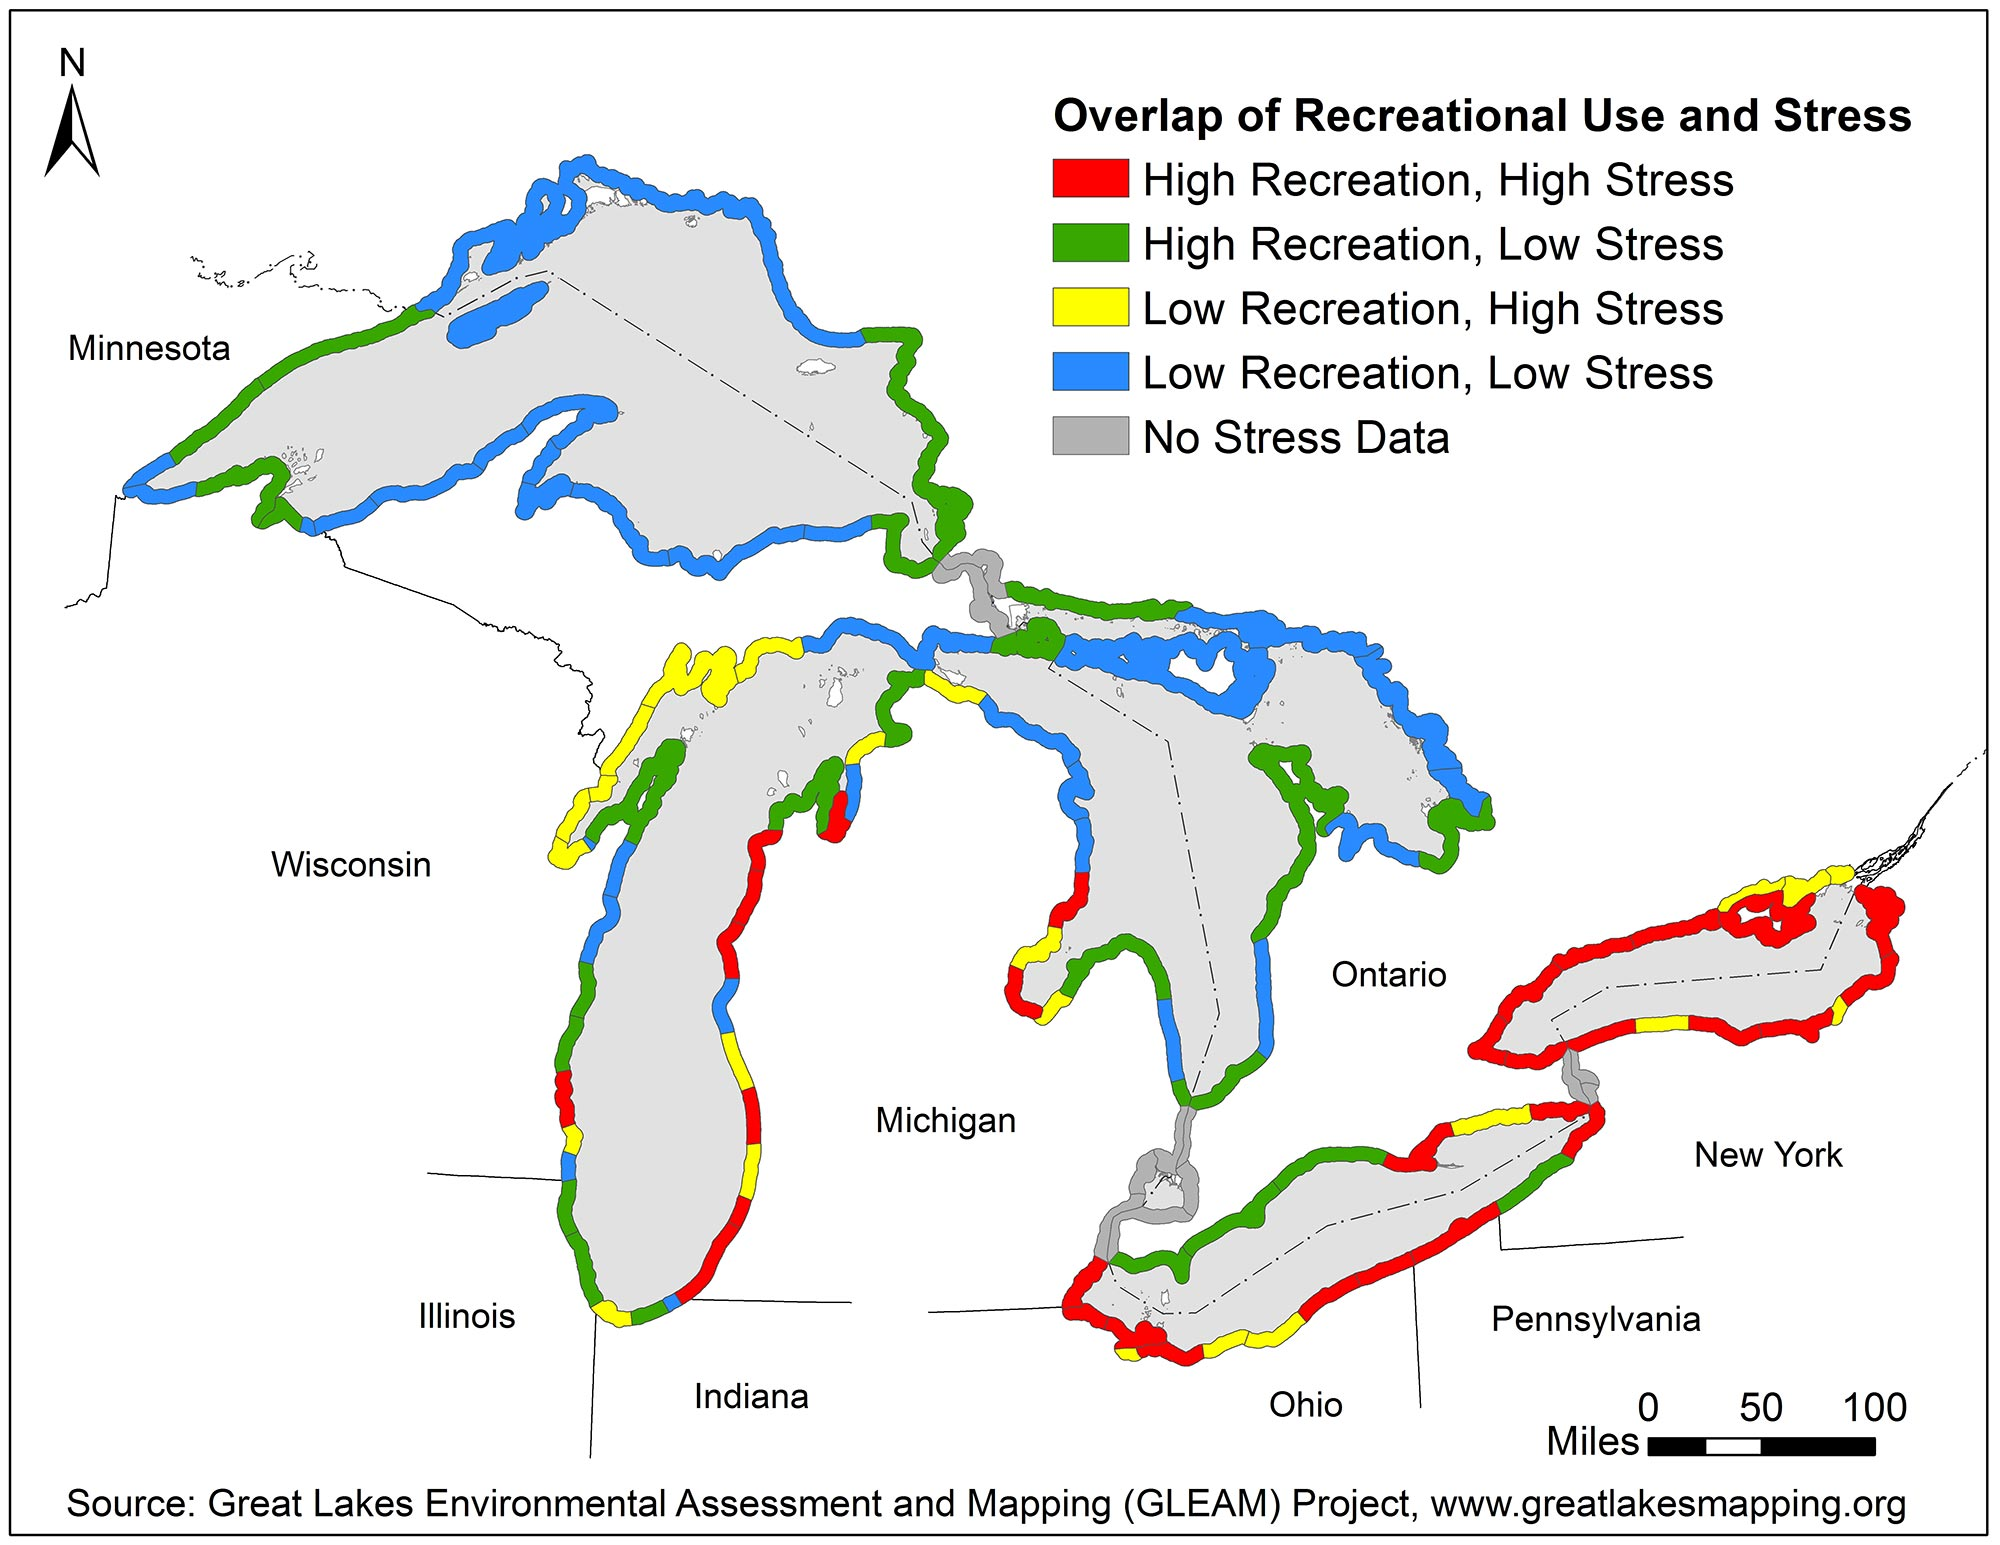 Economics: National Ocean Watch data showing cumulative stress for Great Lakes region